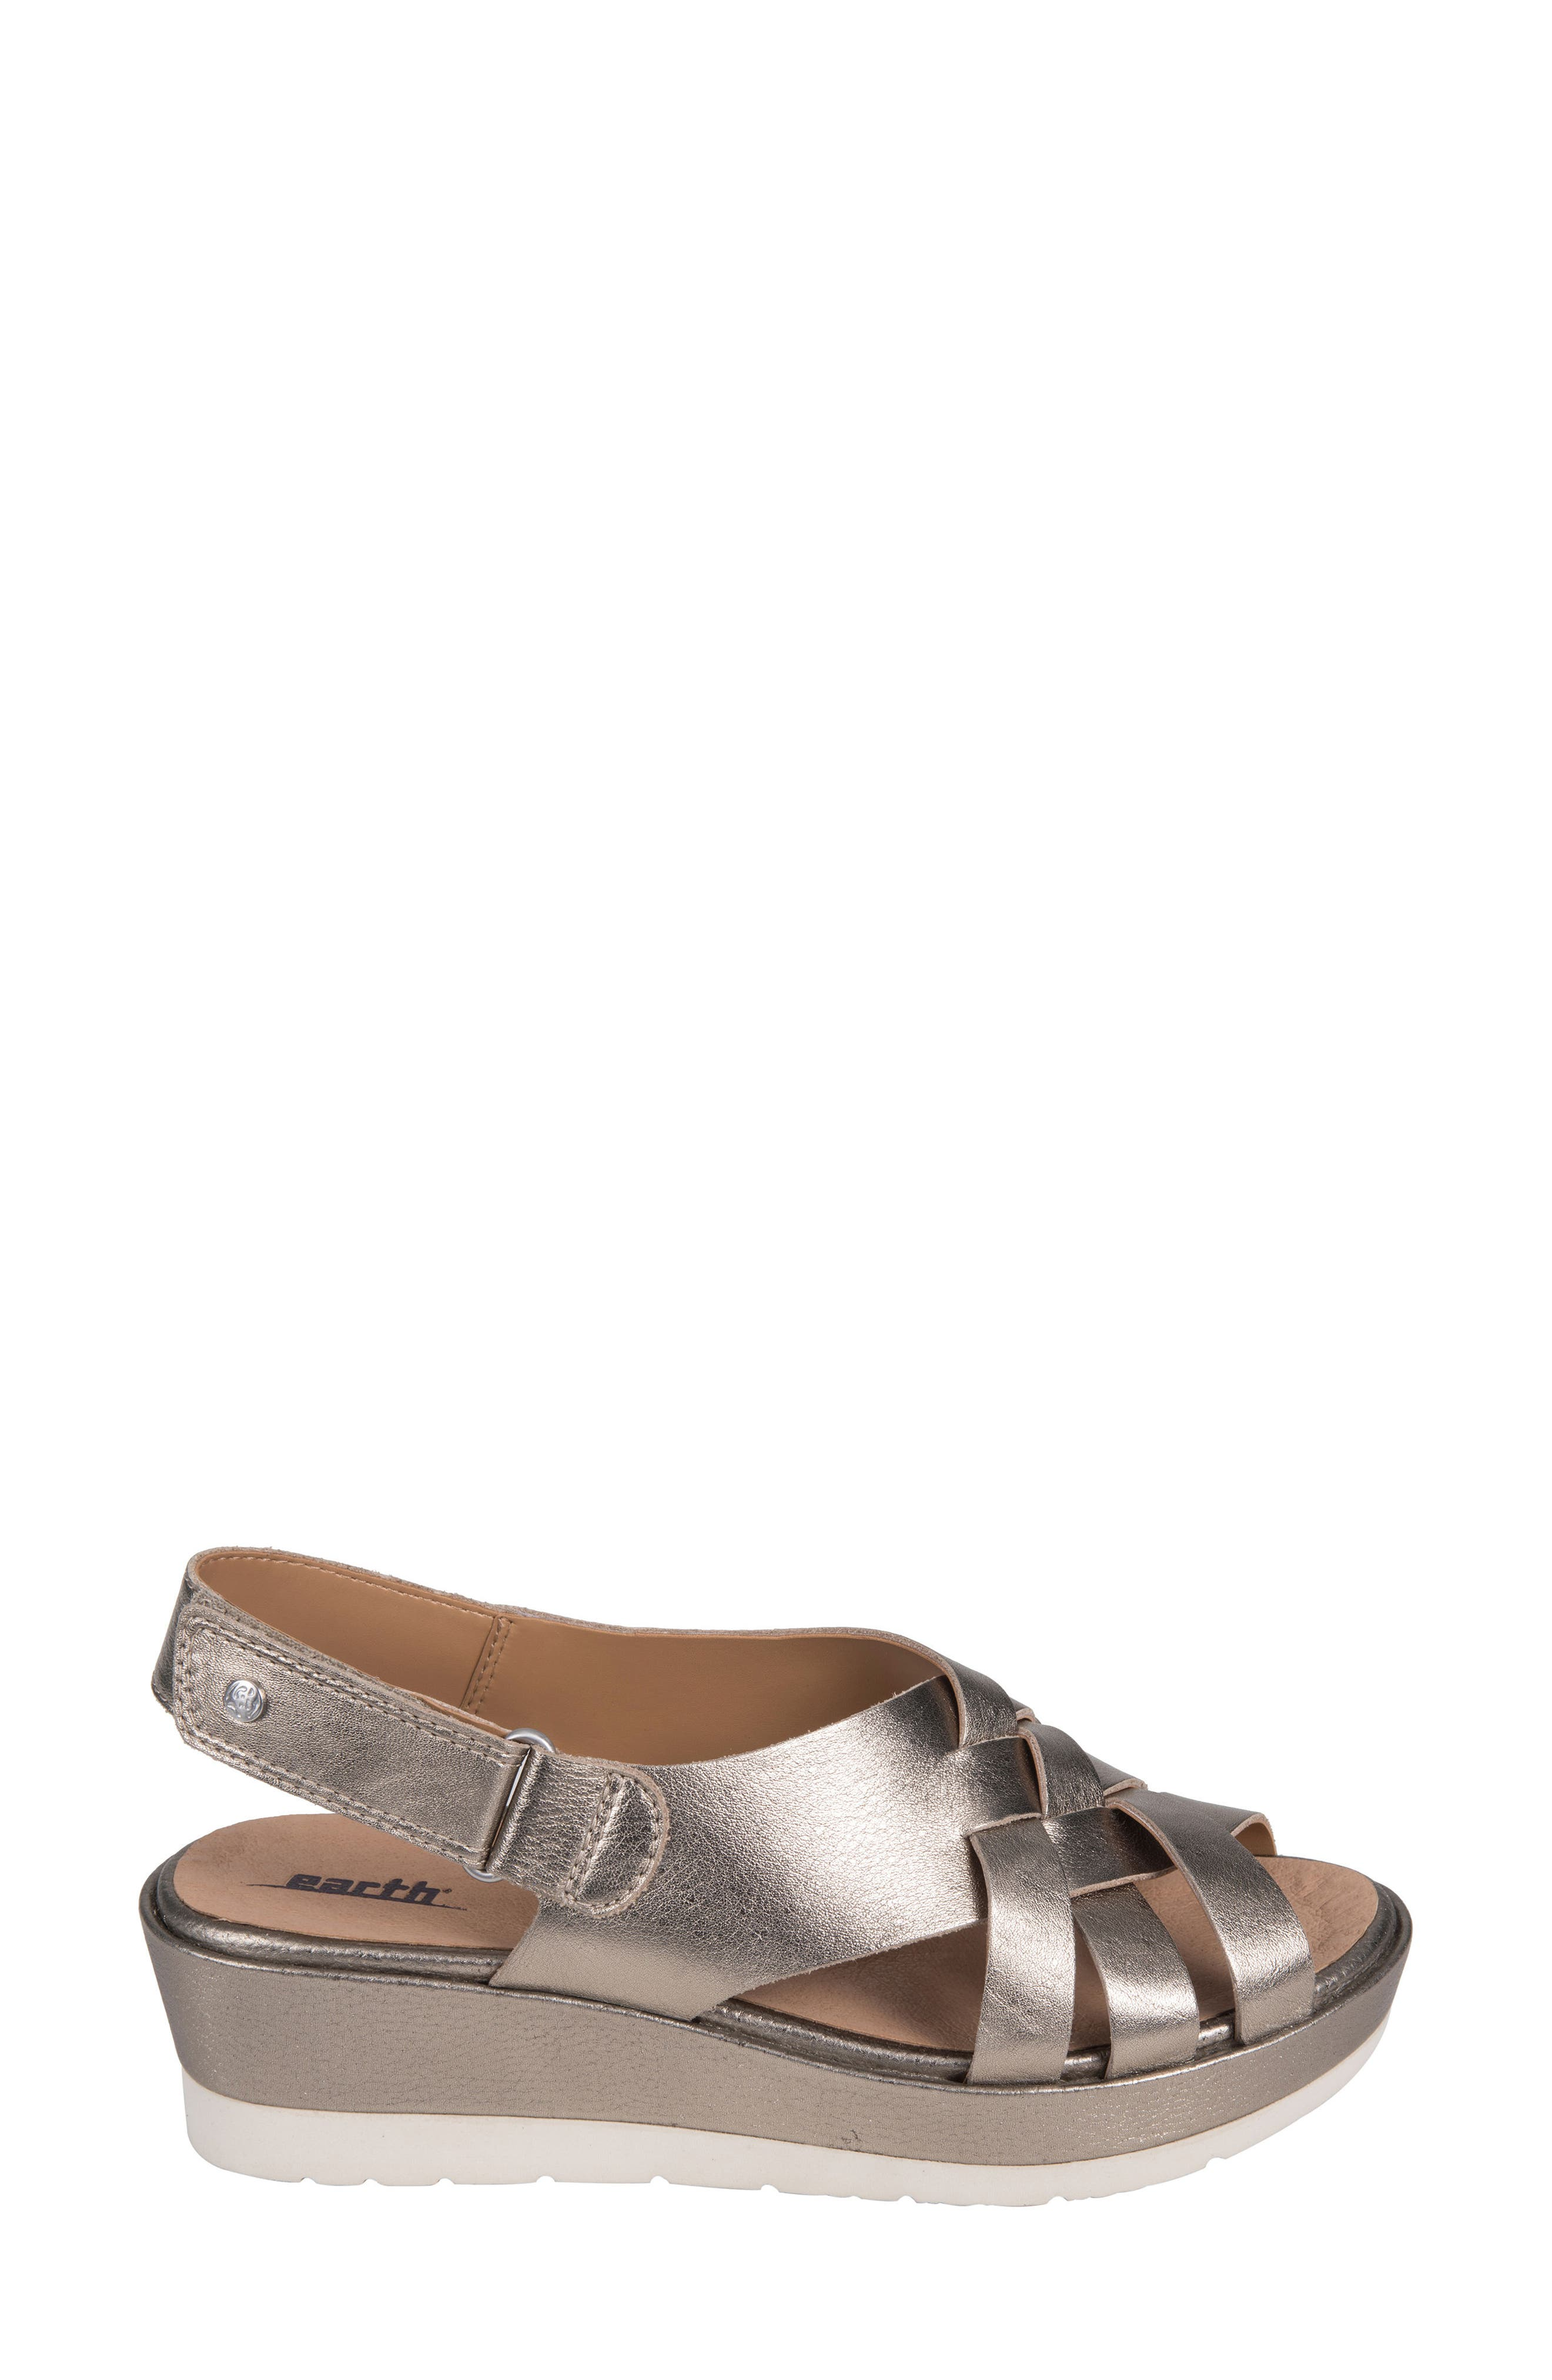 Sunflower Wedge Sandal,                             Alternate thumbnail 3, color,                             WASHED GOLD METALLIC LEATHER